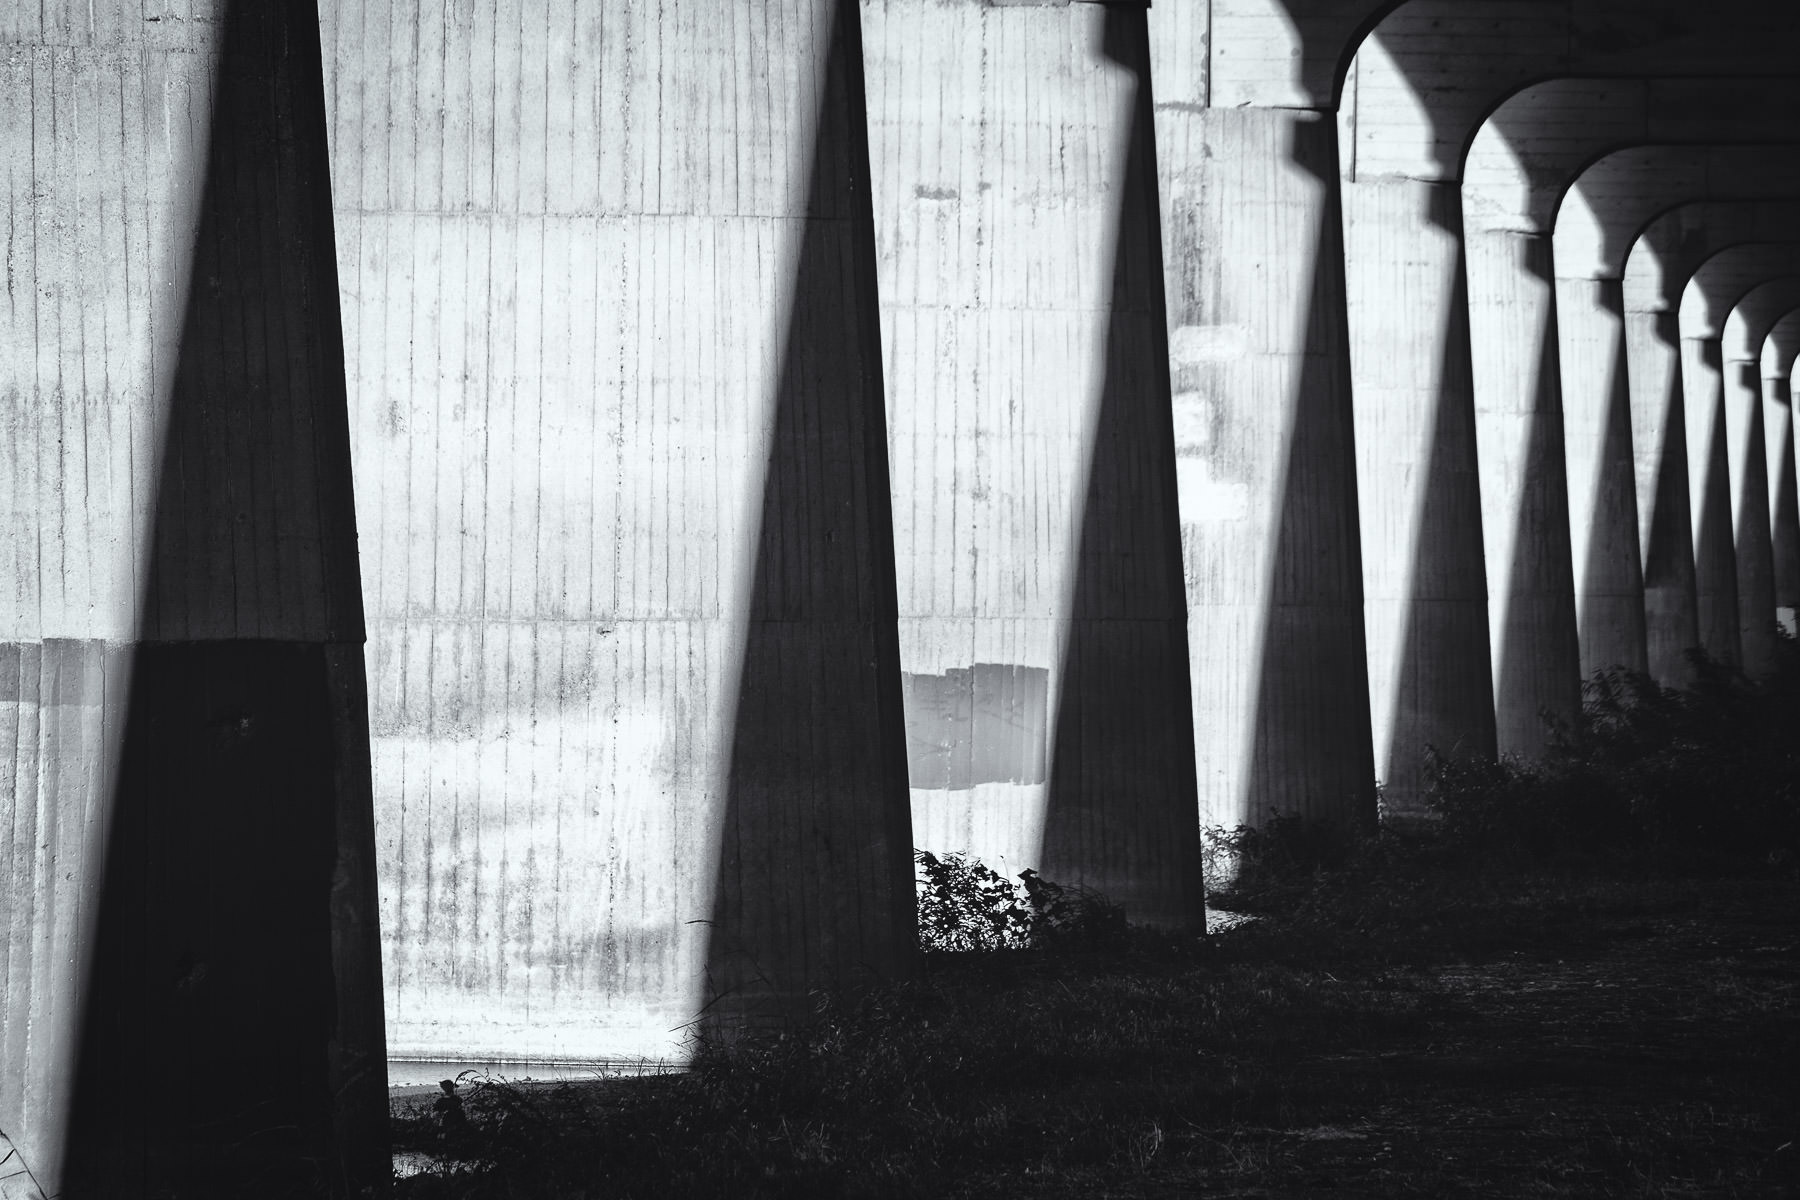 Shadows fall on the supports for the Commerce Street Viaduct, Dallas, Texas.